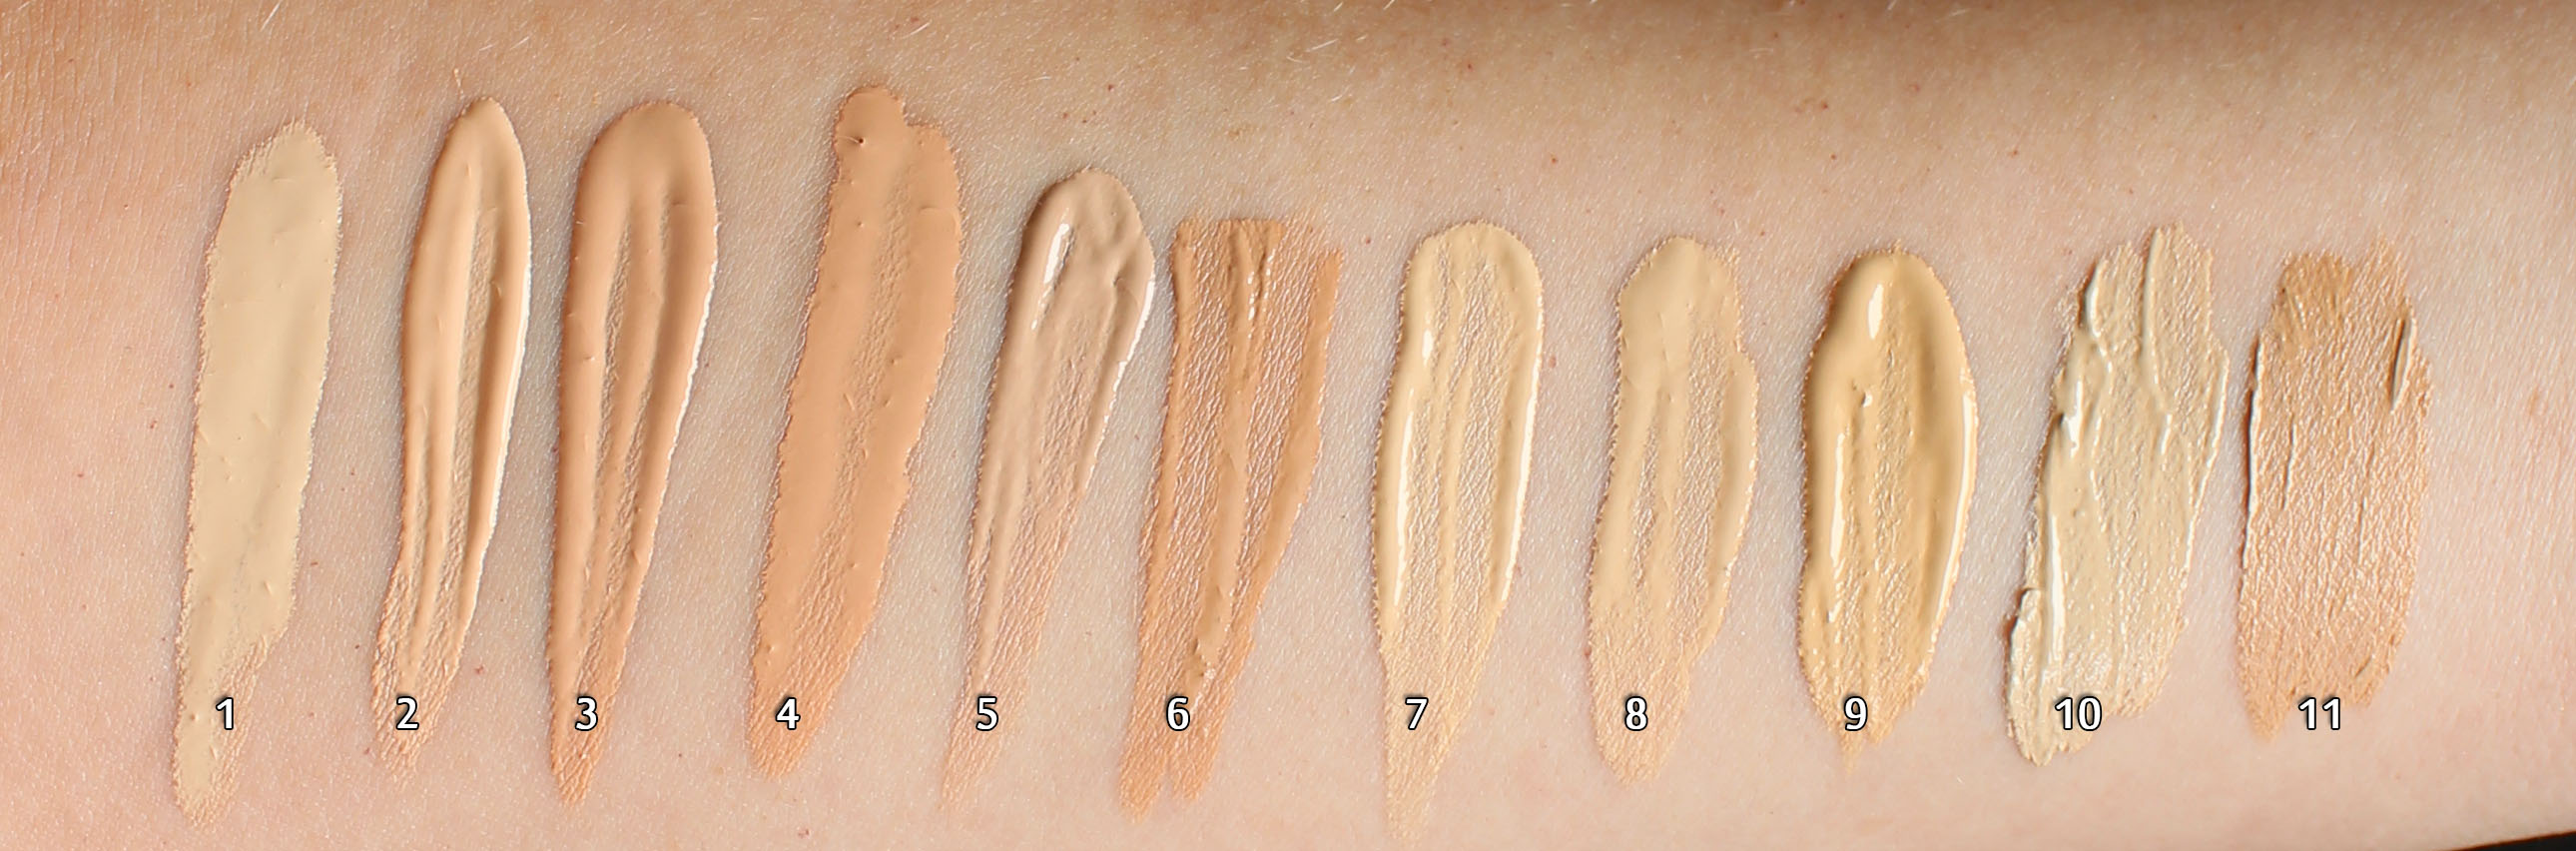 Hand Swatches Of Dermacol Makeup Cover Shades